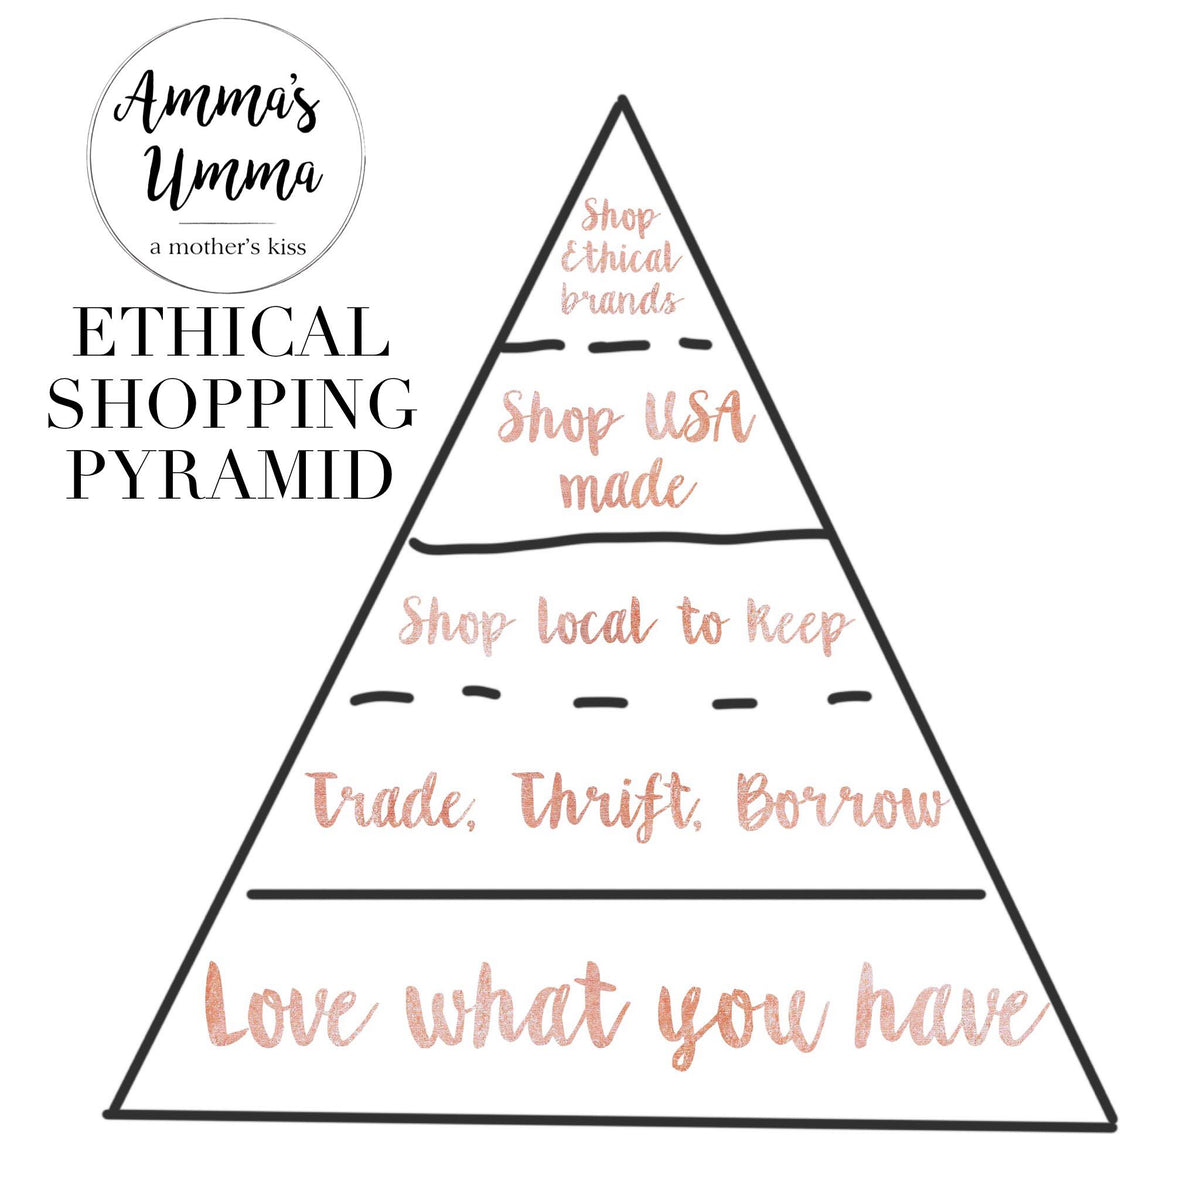 How Do I Shop Ethically?